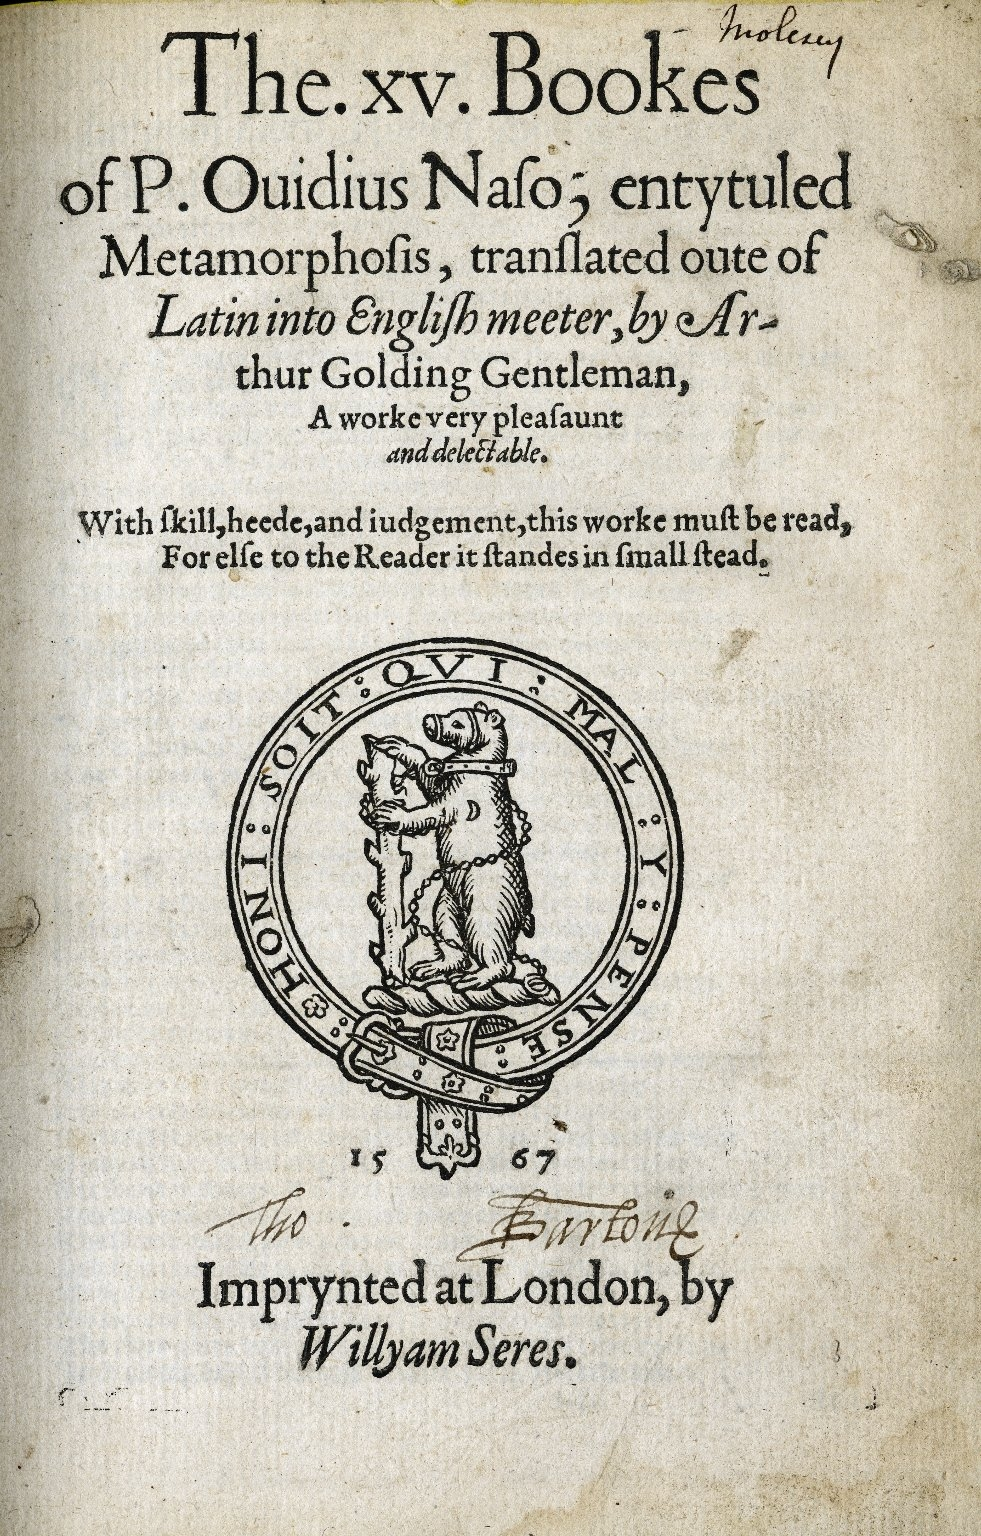 Title page of Ovid's Metamorphoses (1567, trans. Arthur Golding). Image courtesy of the Folger Digital Image Collection.